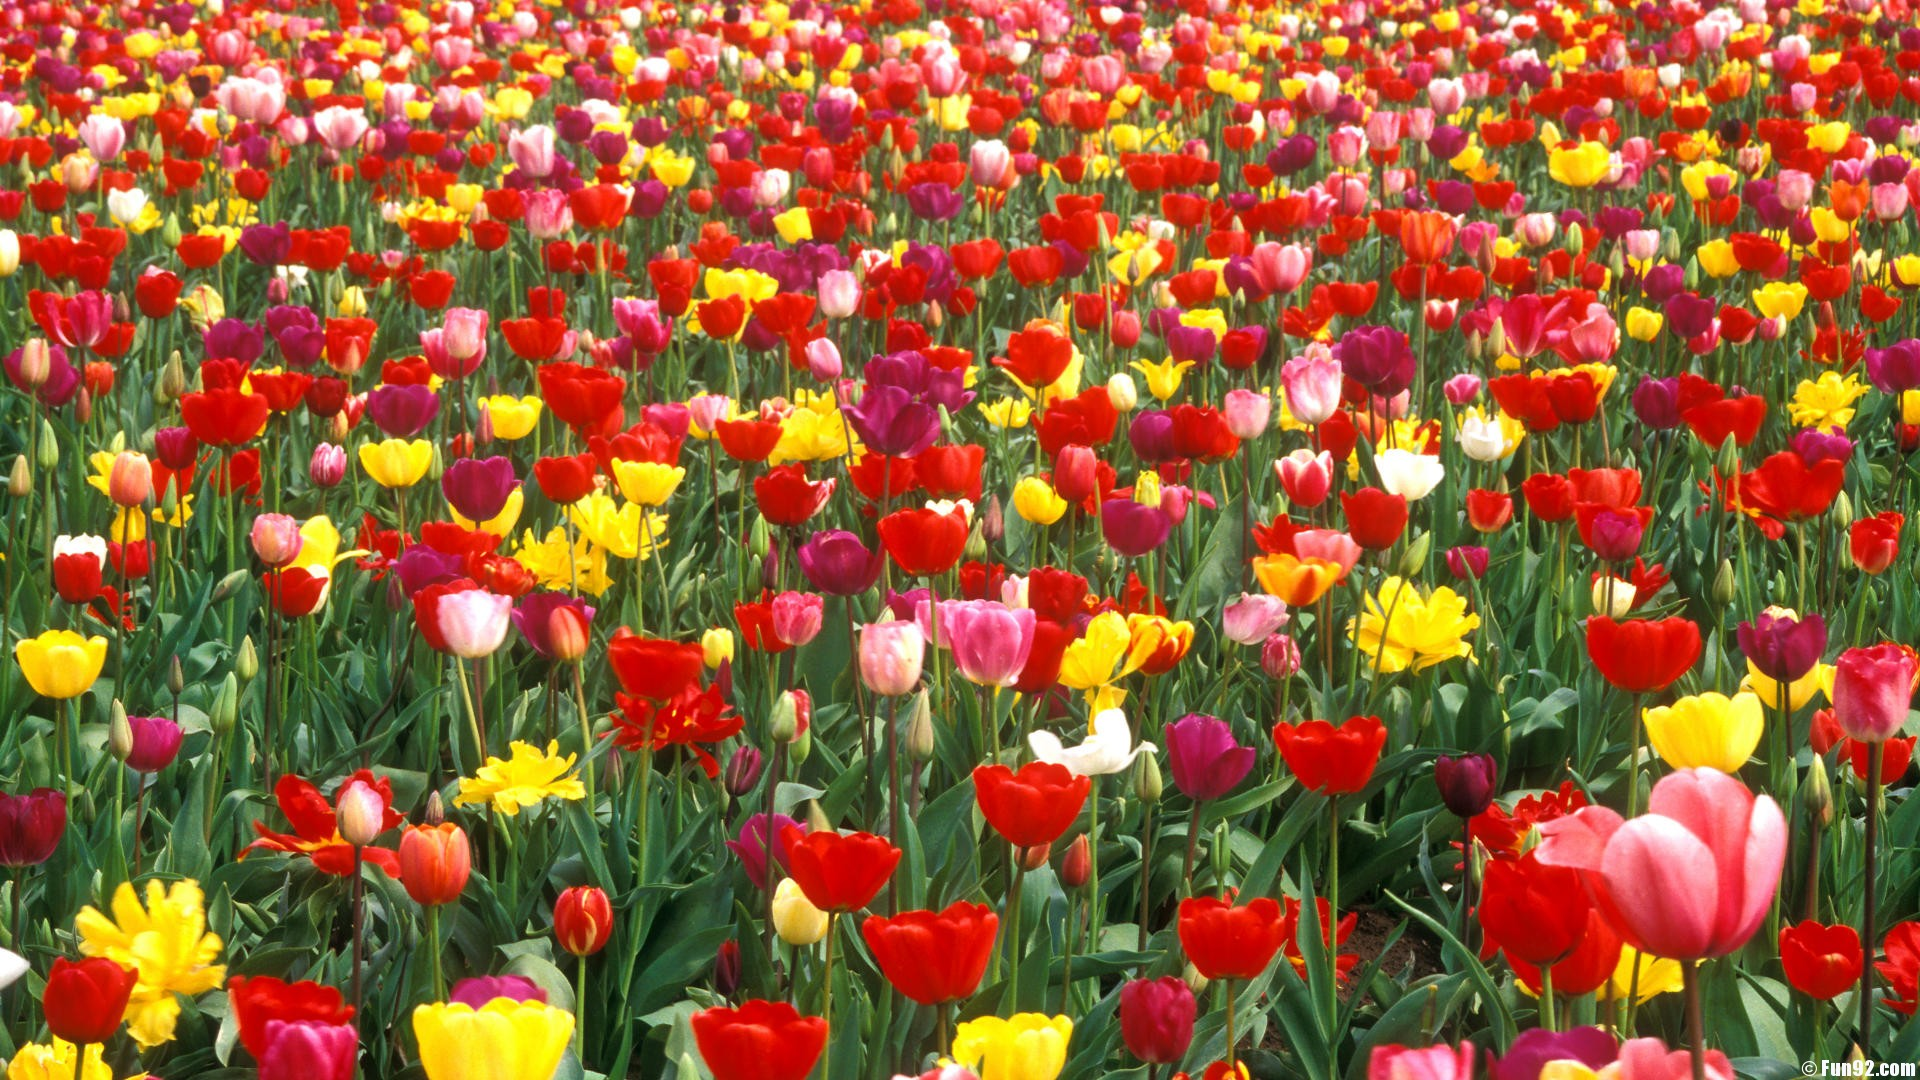 Affordable Flowers Gardens Wallpapers For Desktop Full Size With